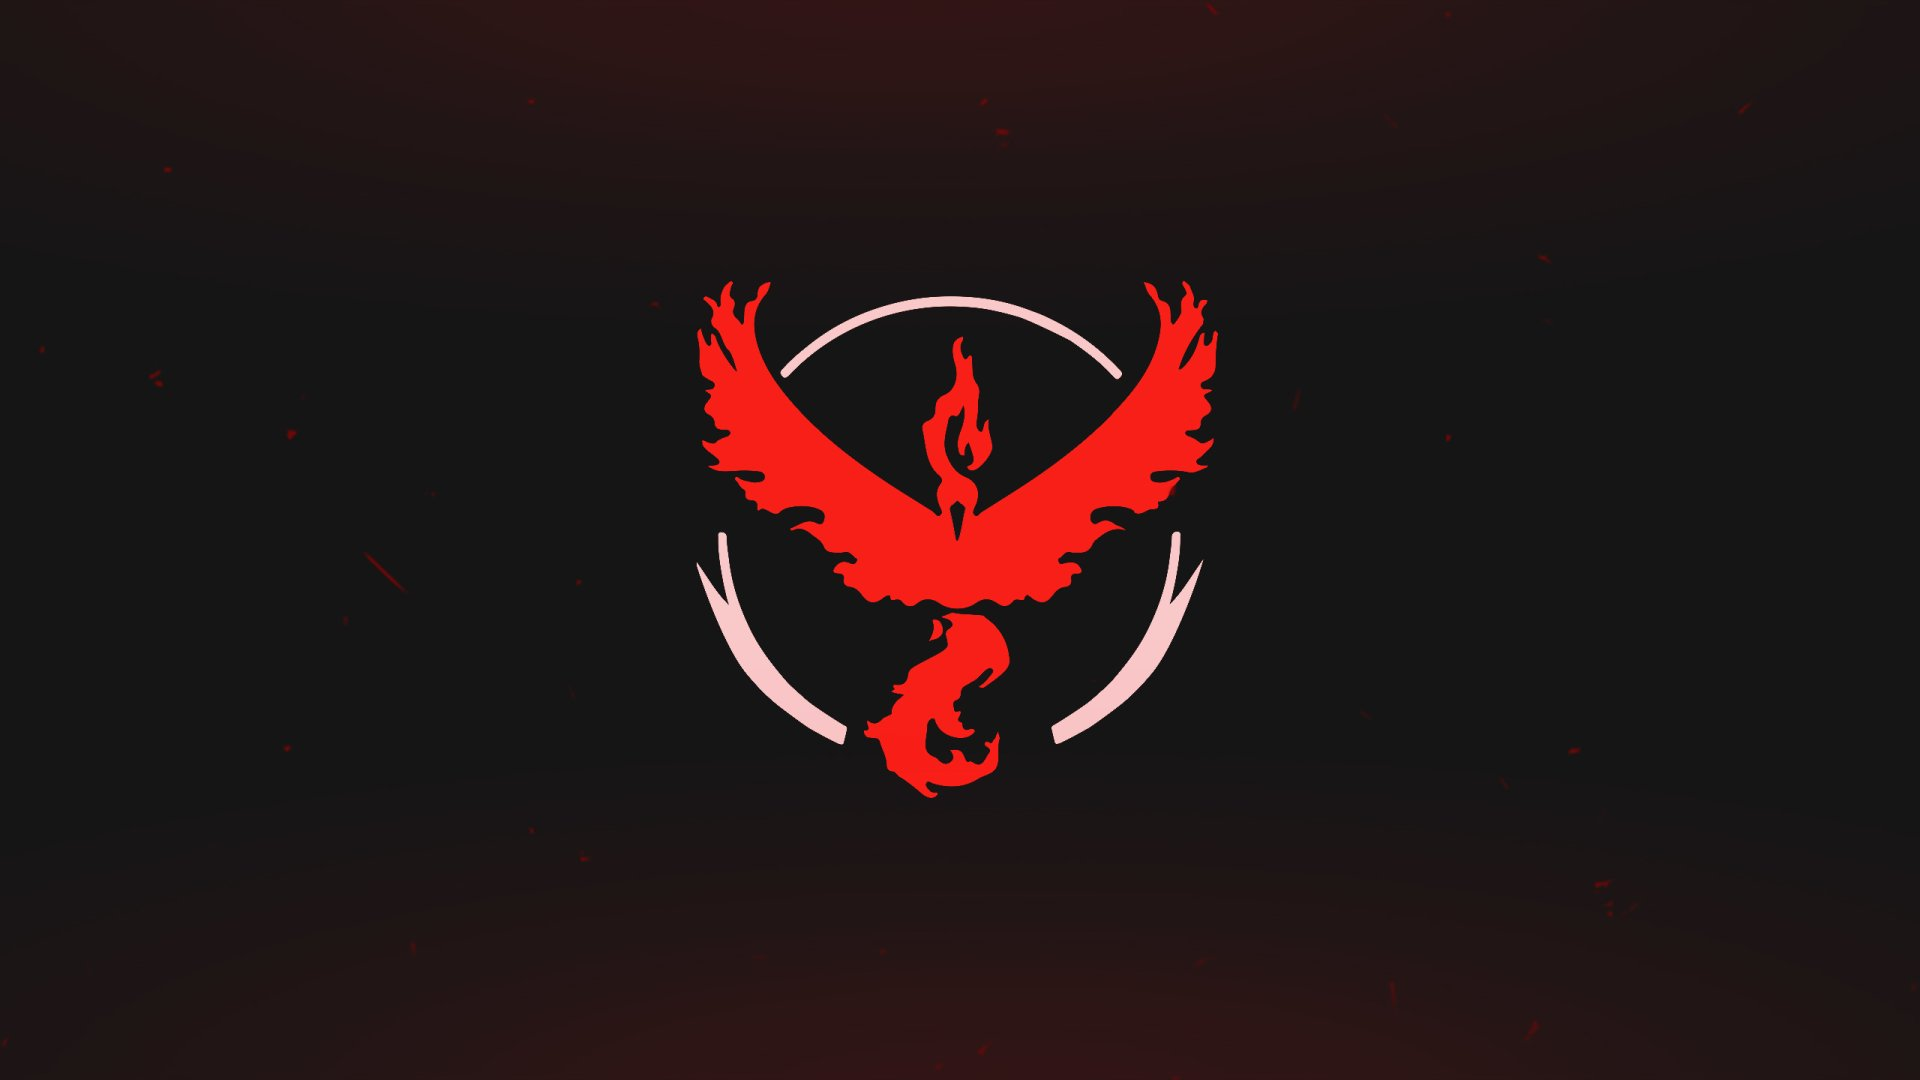 Video Game - Pokémon GO  Video Game Moltres (Pokémon) Pokémon Pokemon Go Team Valor Red Wallpaper